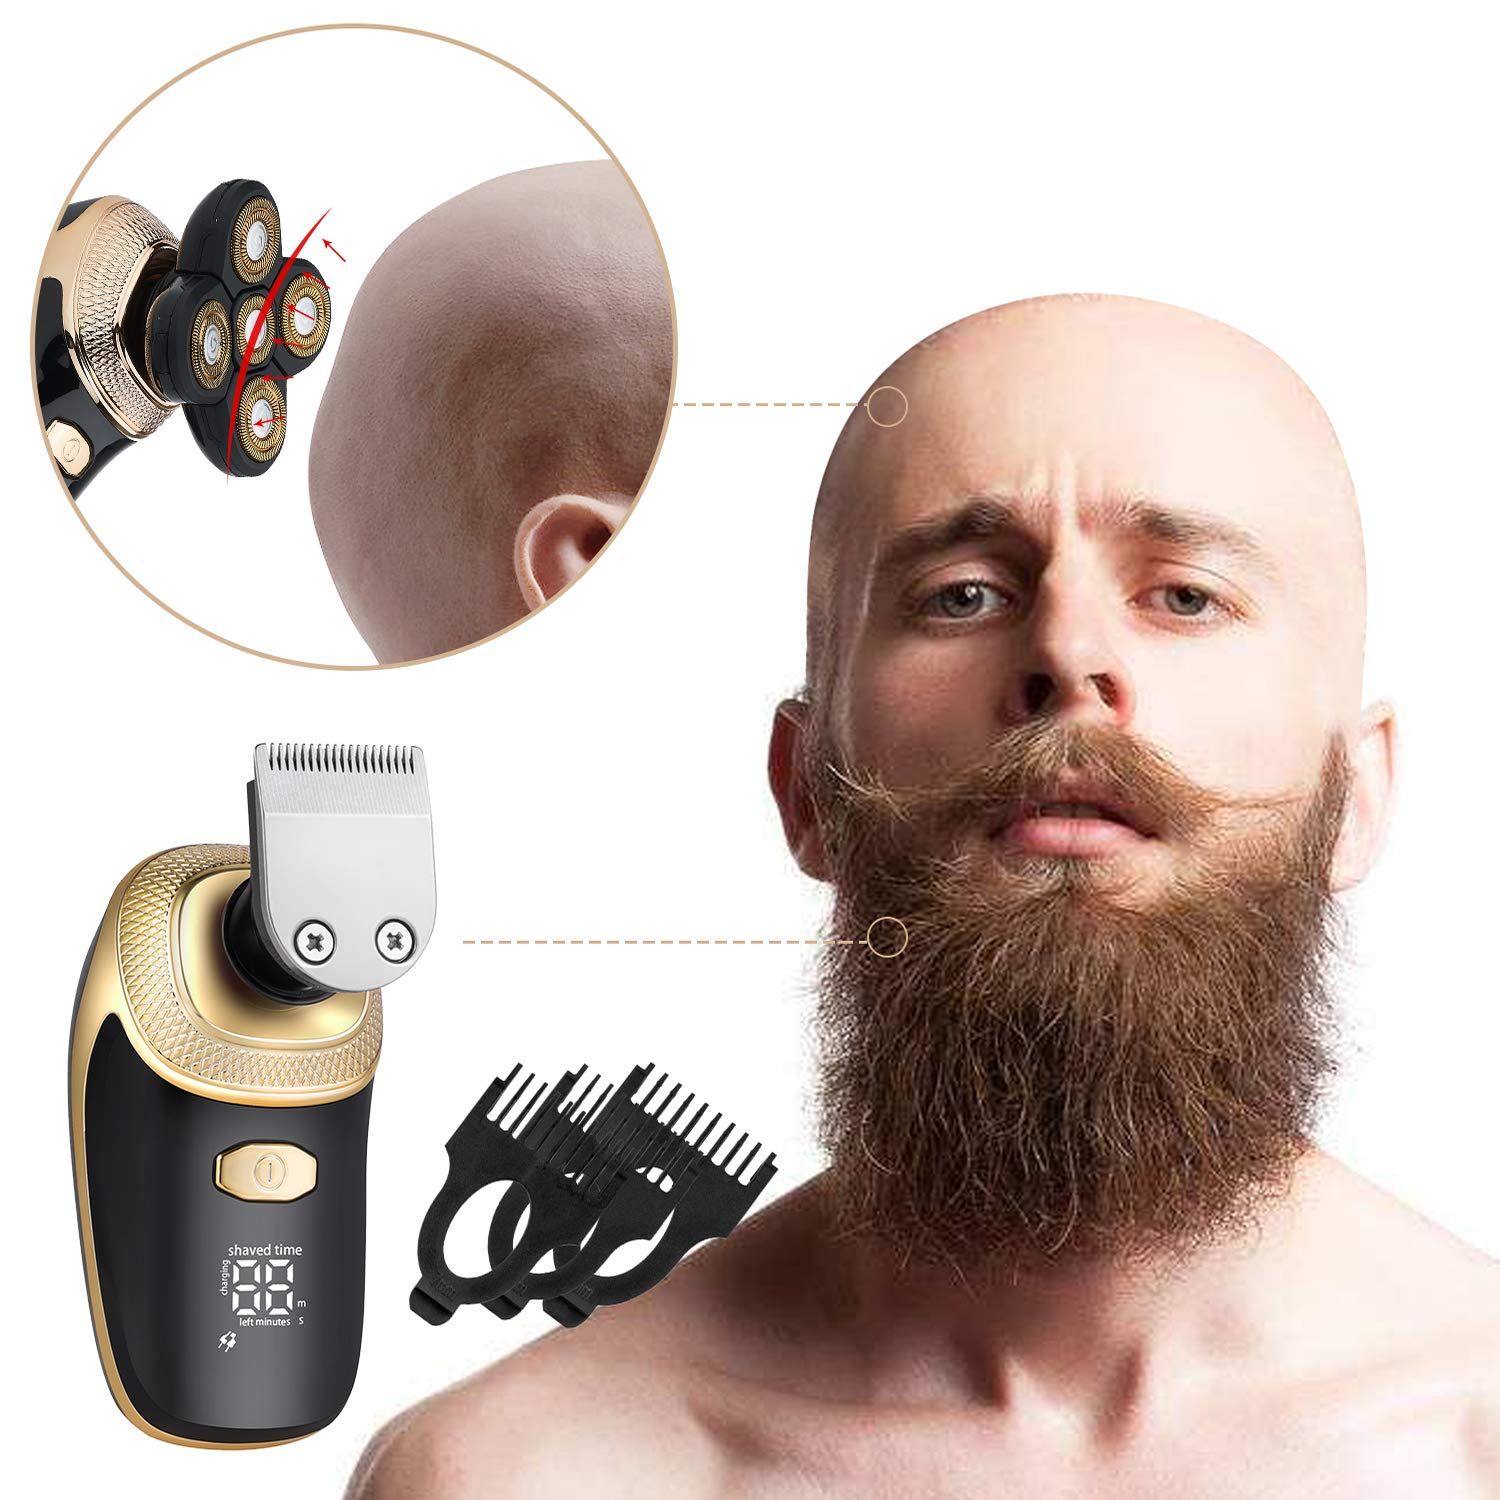 Mens Electric Shaver, Waterproof 5 In 1 Bald Men Razor Beard Trimmer Grooming Kit